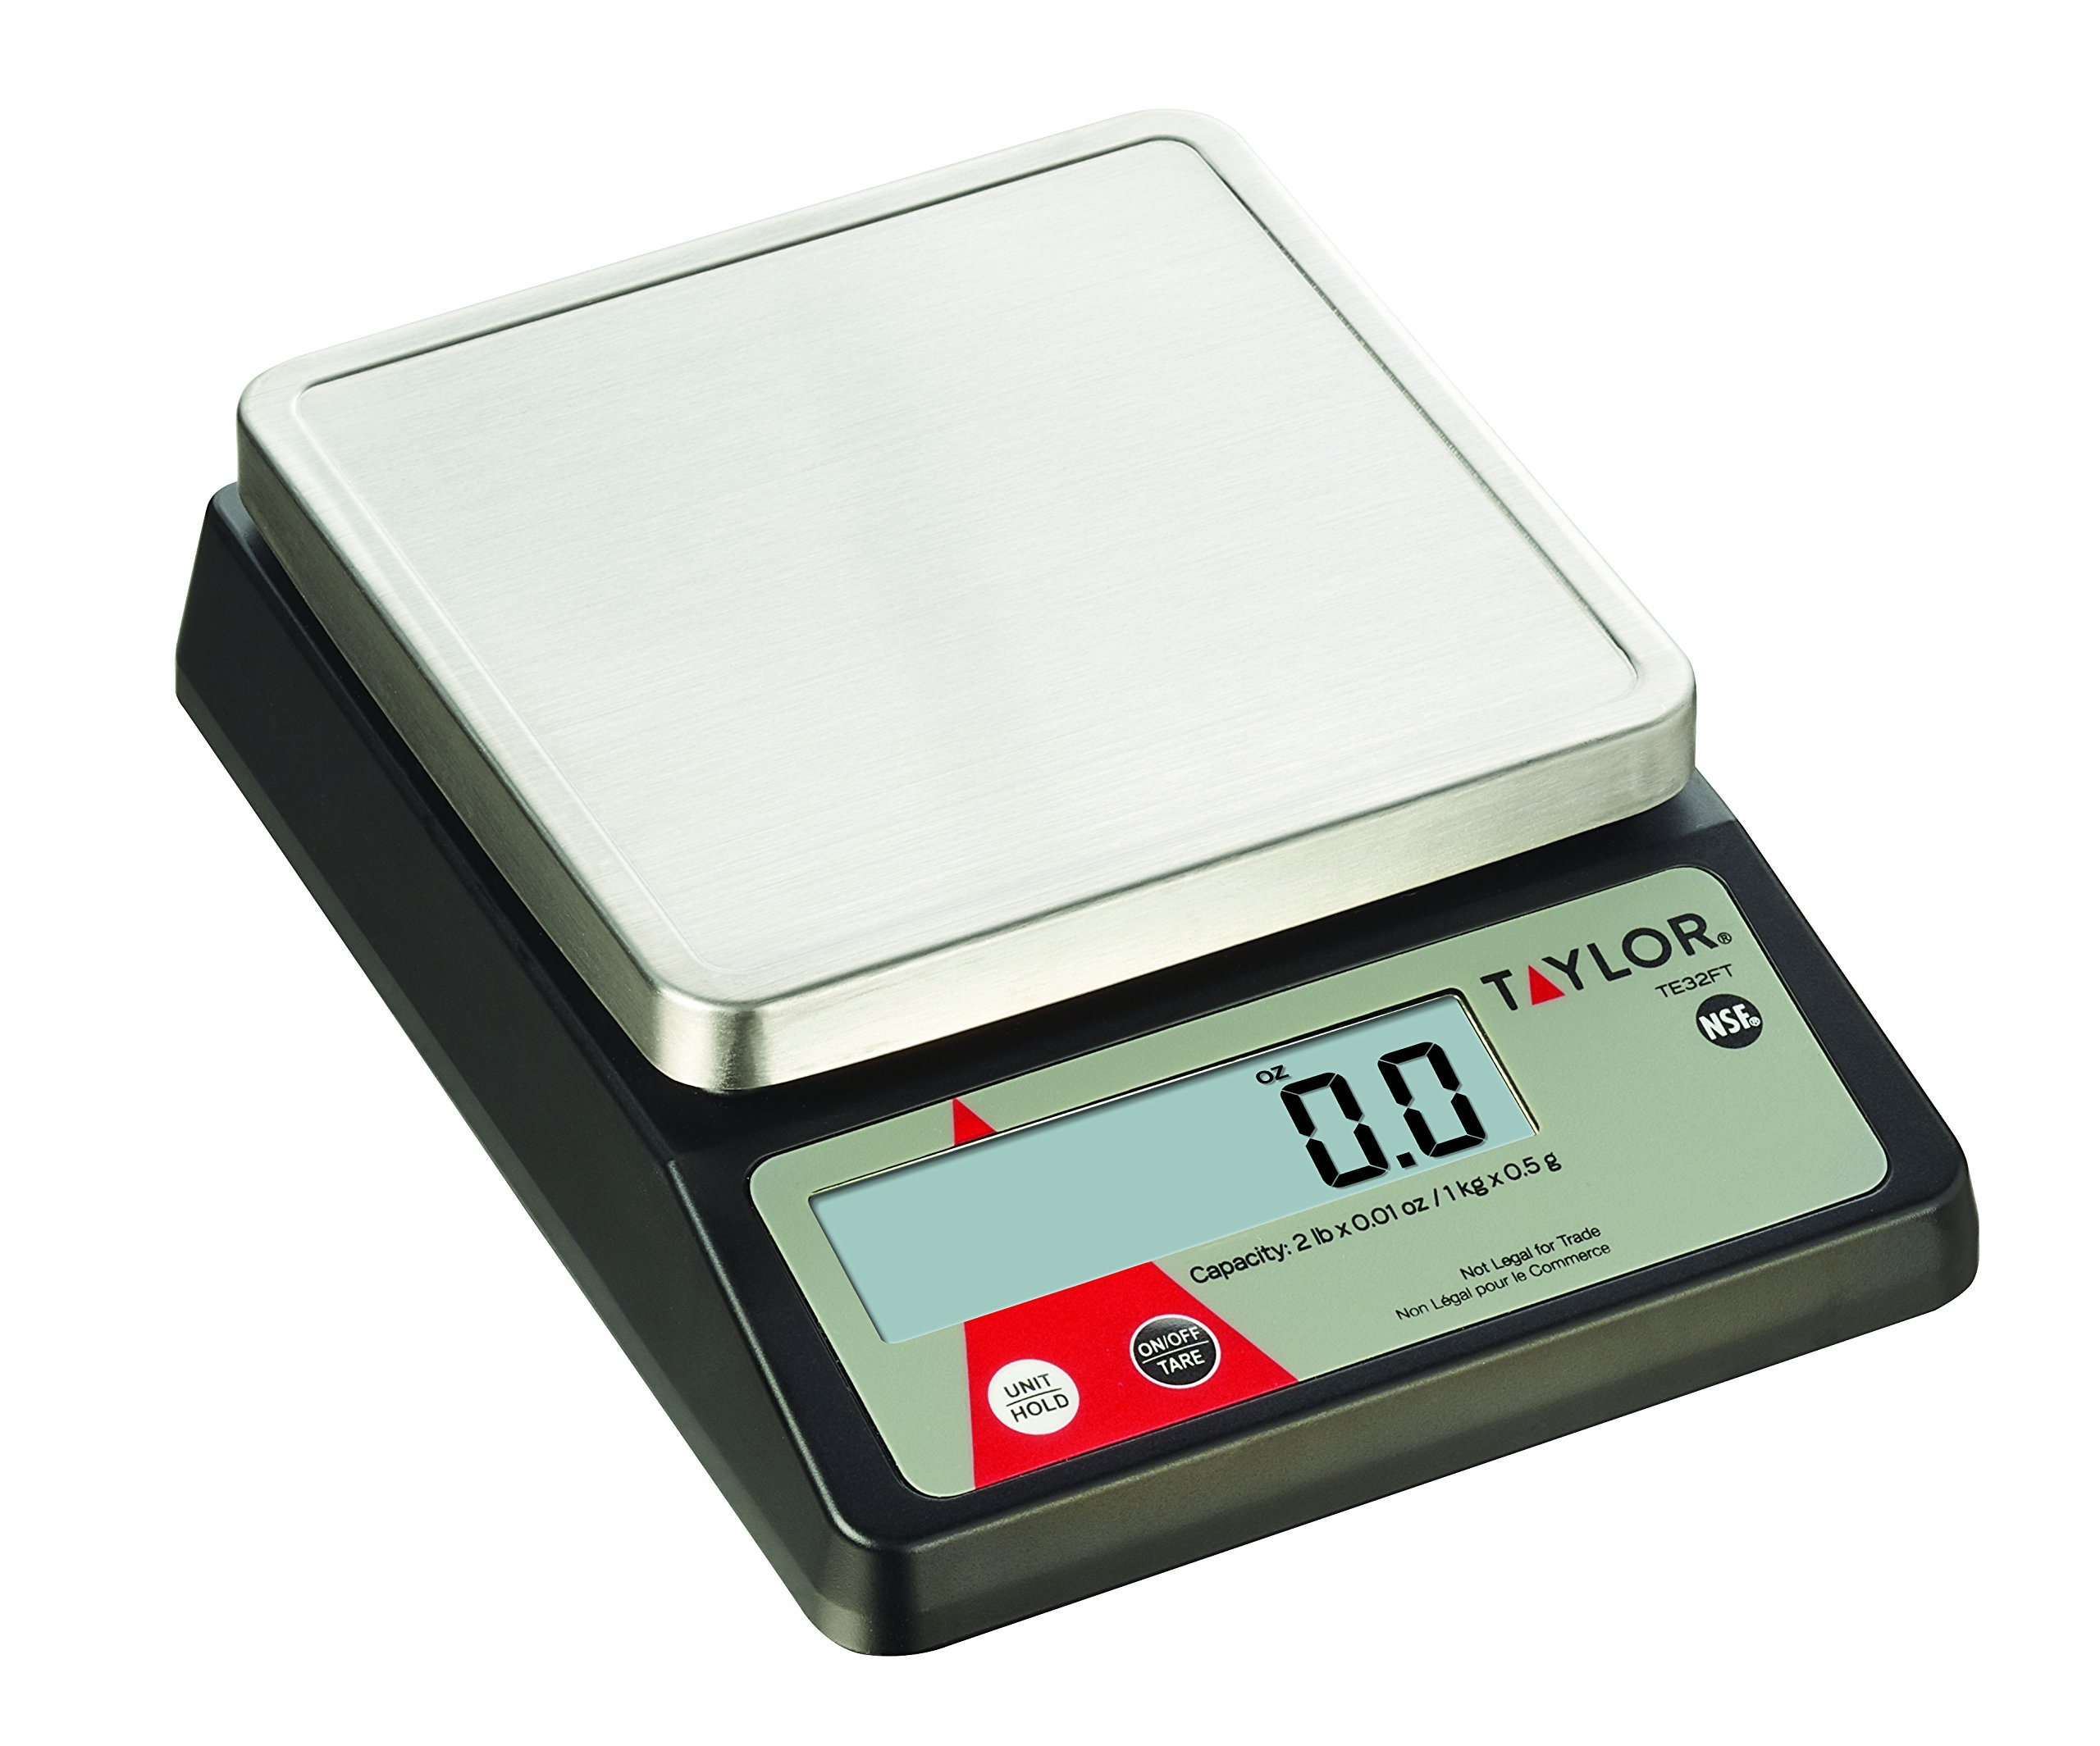 Taylor Precision Products Digital Portion Control Scale (2-Pound) by Taylor Precision Products